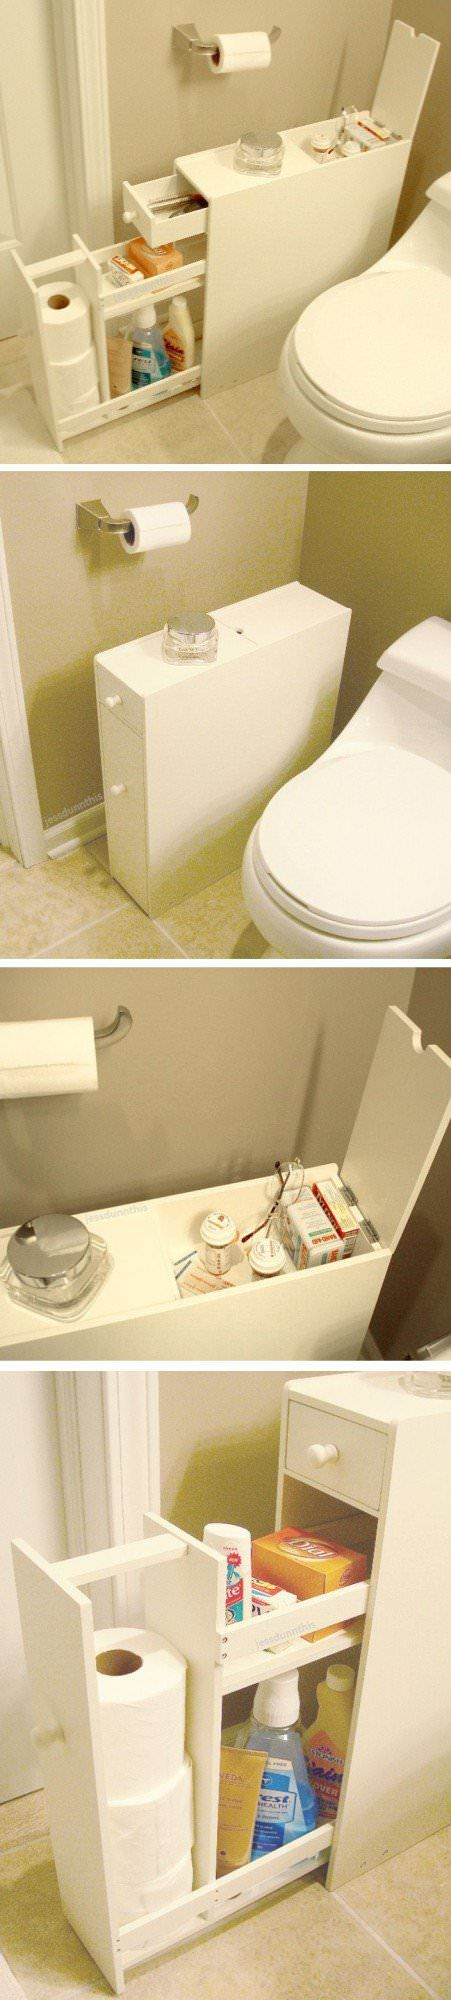 Small-Bathroom-Storage-Ideas-2.jpg 451×2,000 pixels